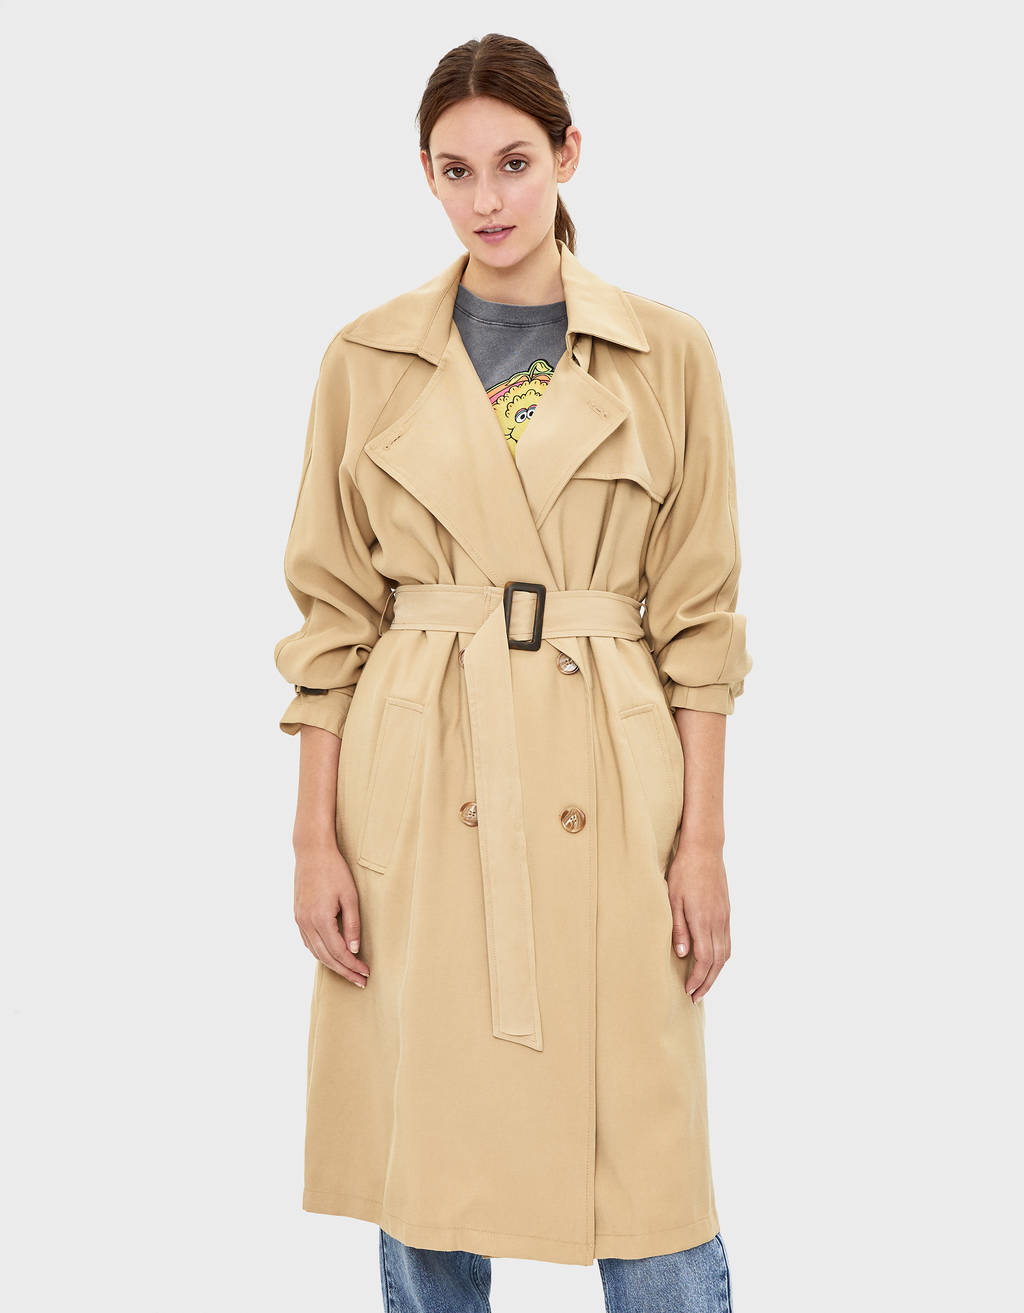 Loose-fitting trench coat with belt